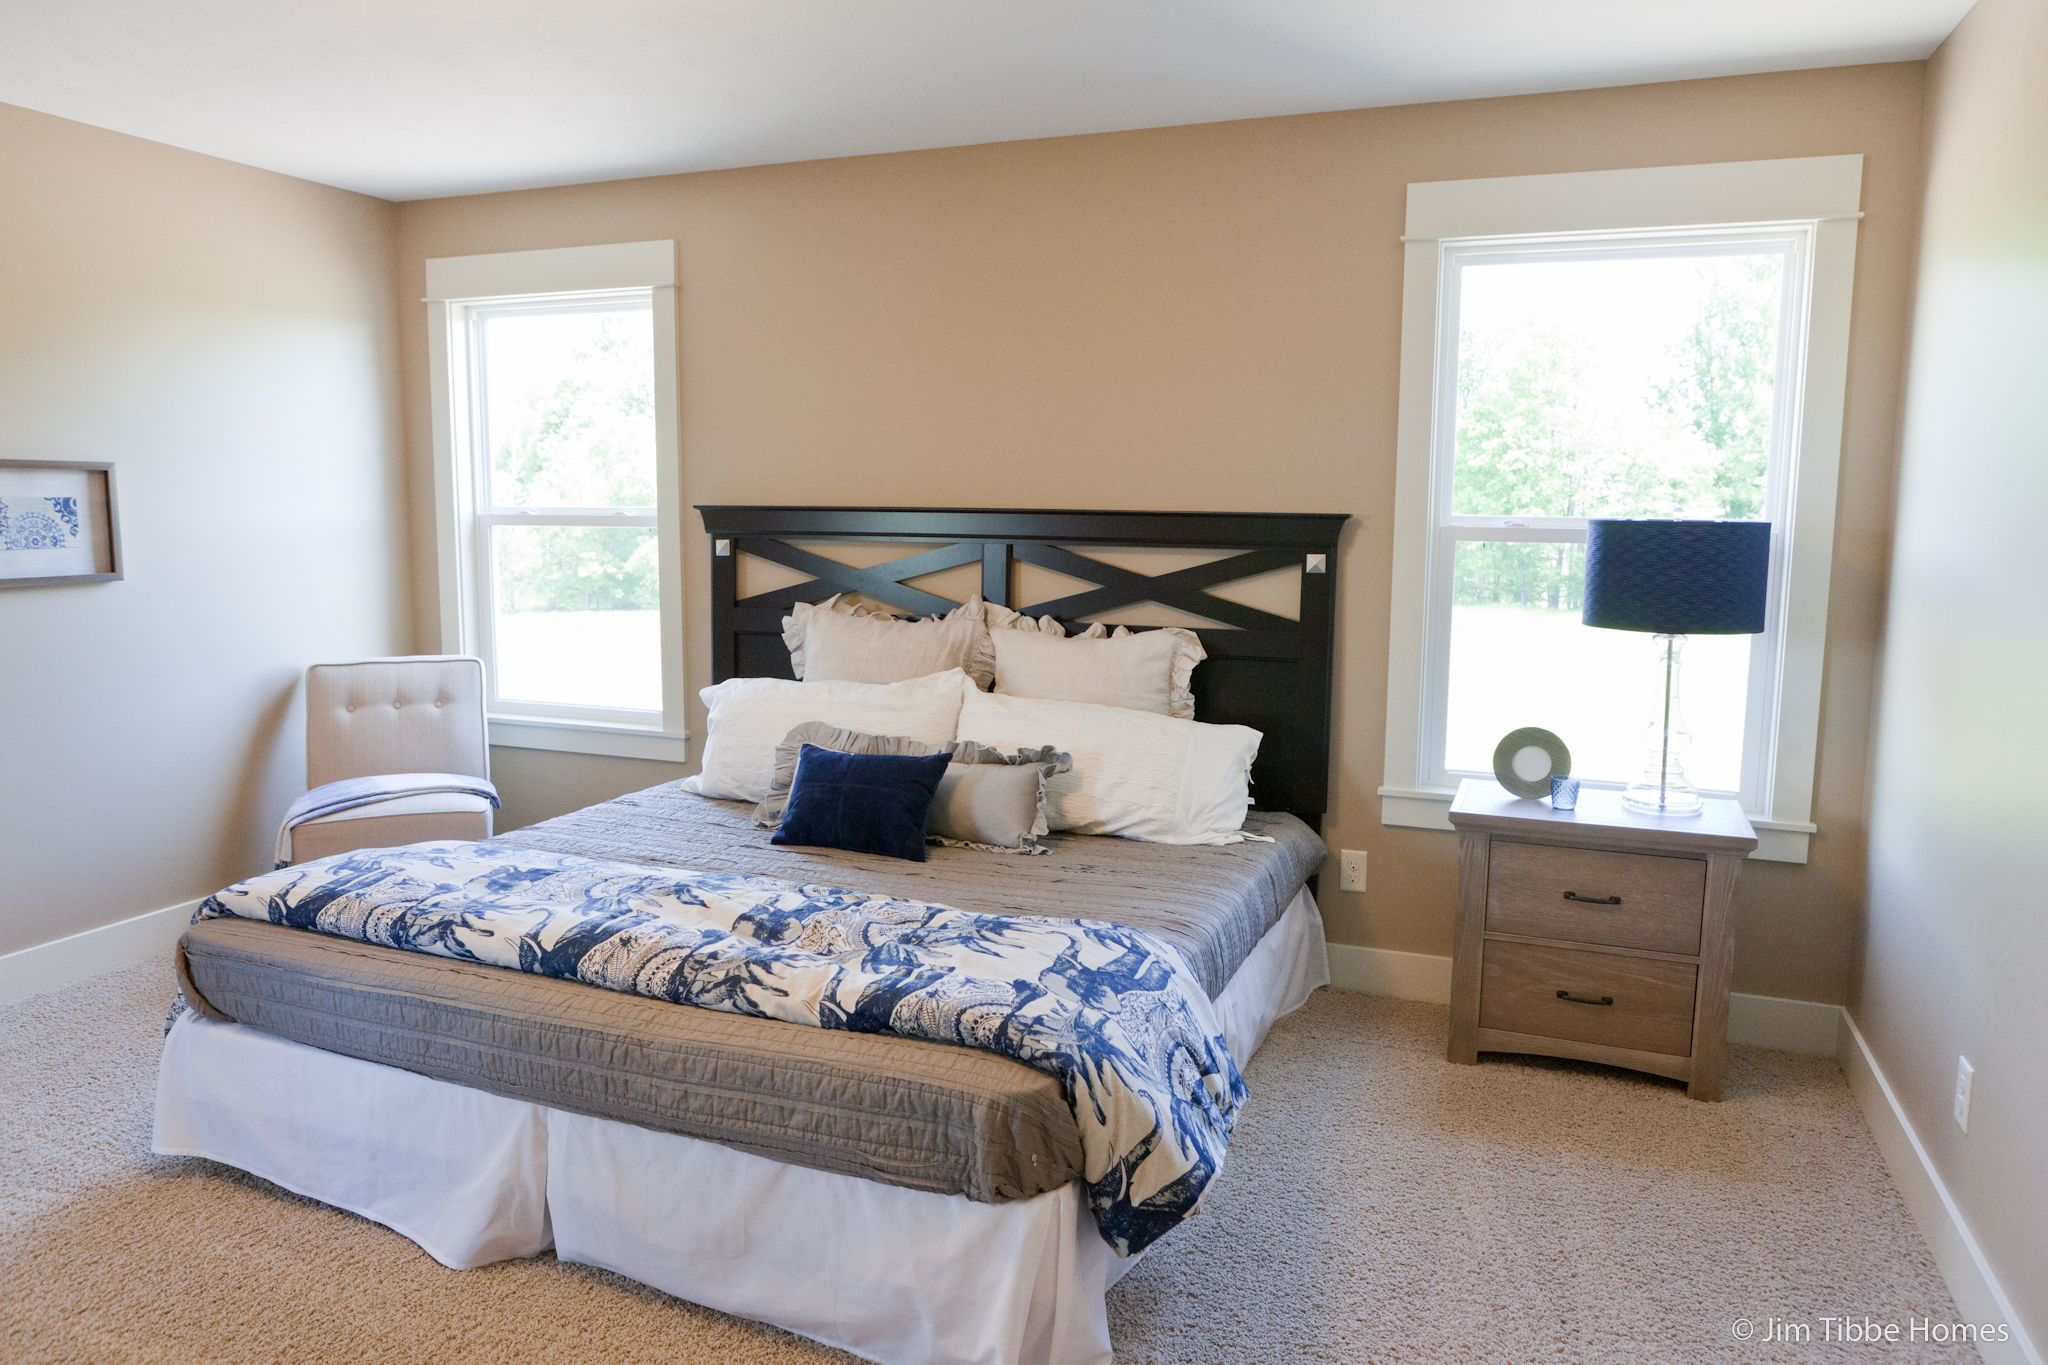 Pin by jim tibbe homes on decor ideasstaging pinterest construction